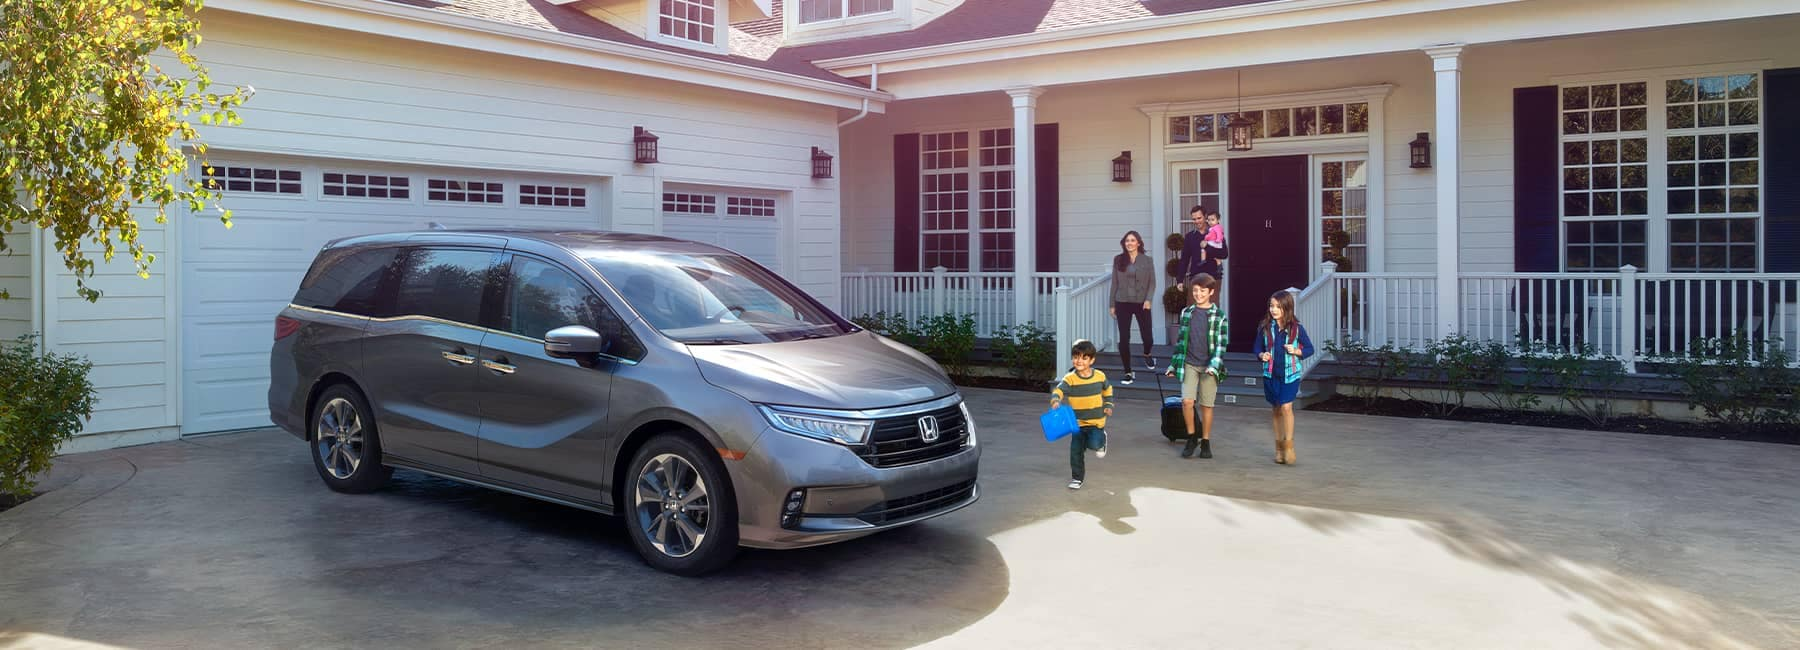 2021 Silver Honda Odyssey parked in front of a white home with black shutters_mobile